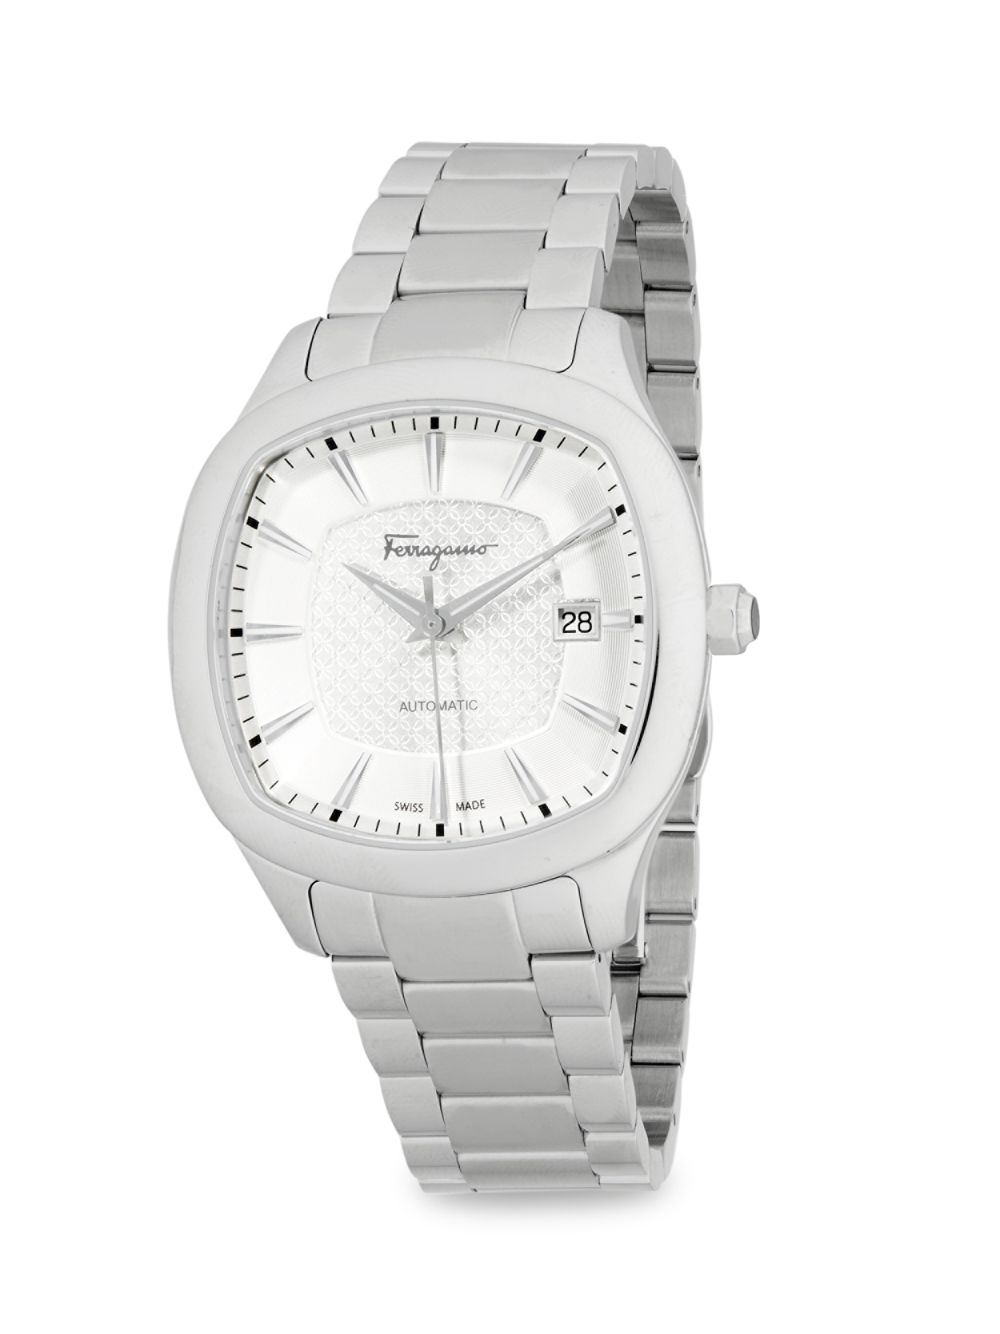 Analog Rounded Stainless Steel Bracelet Watch